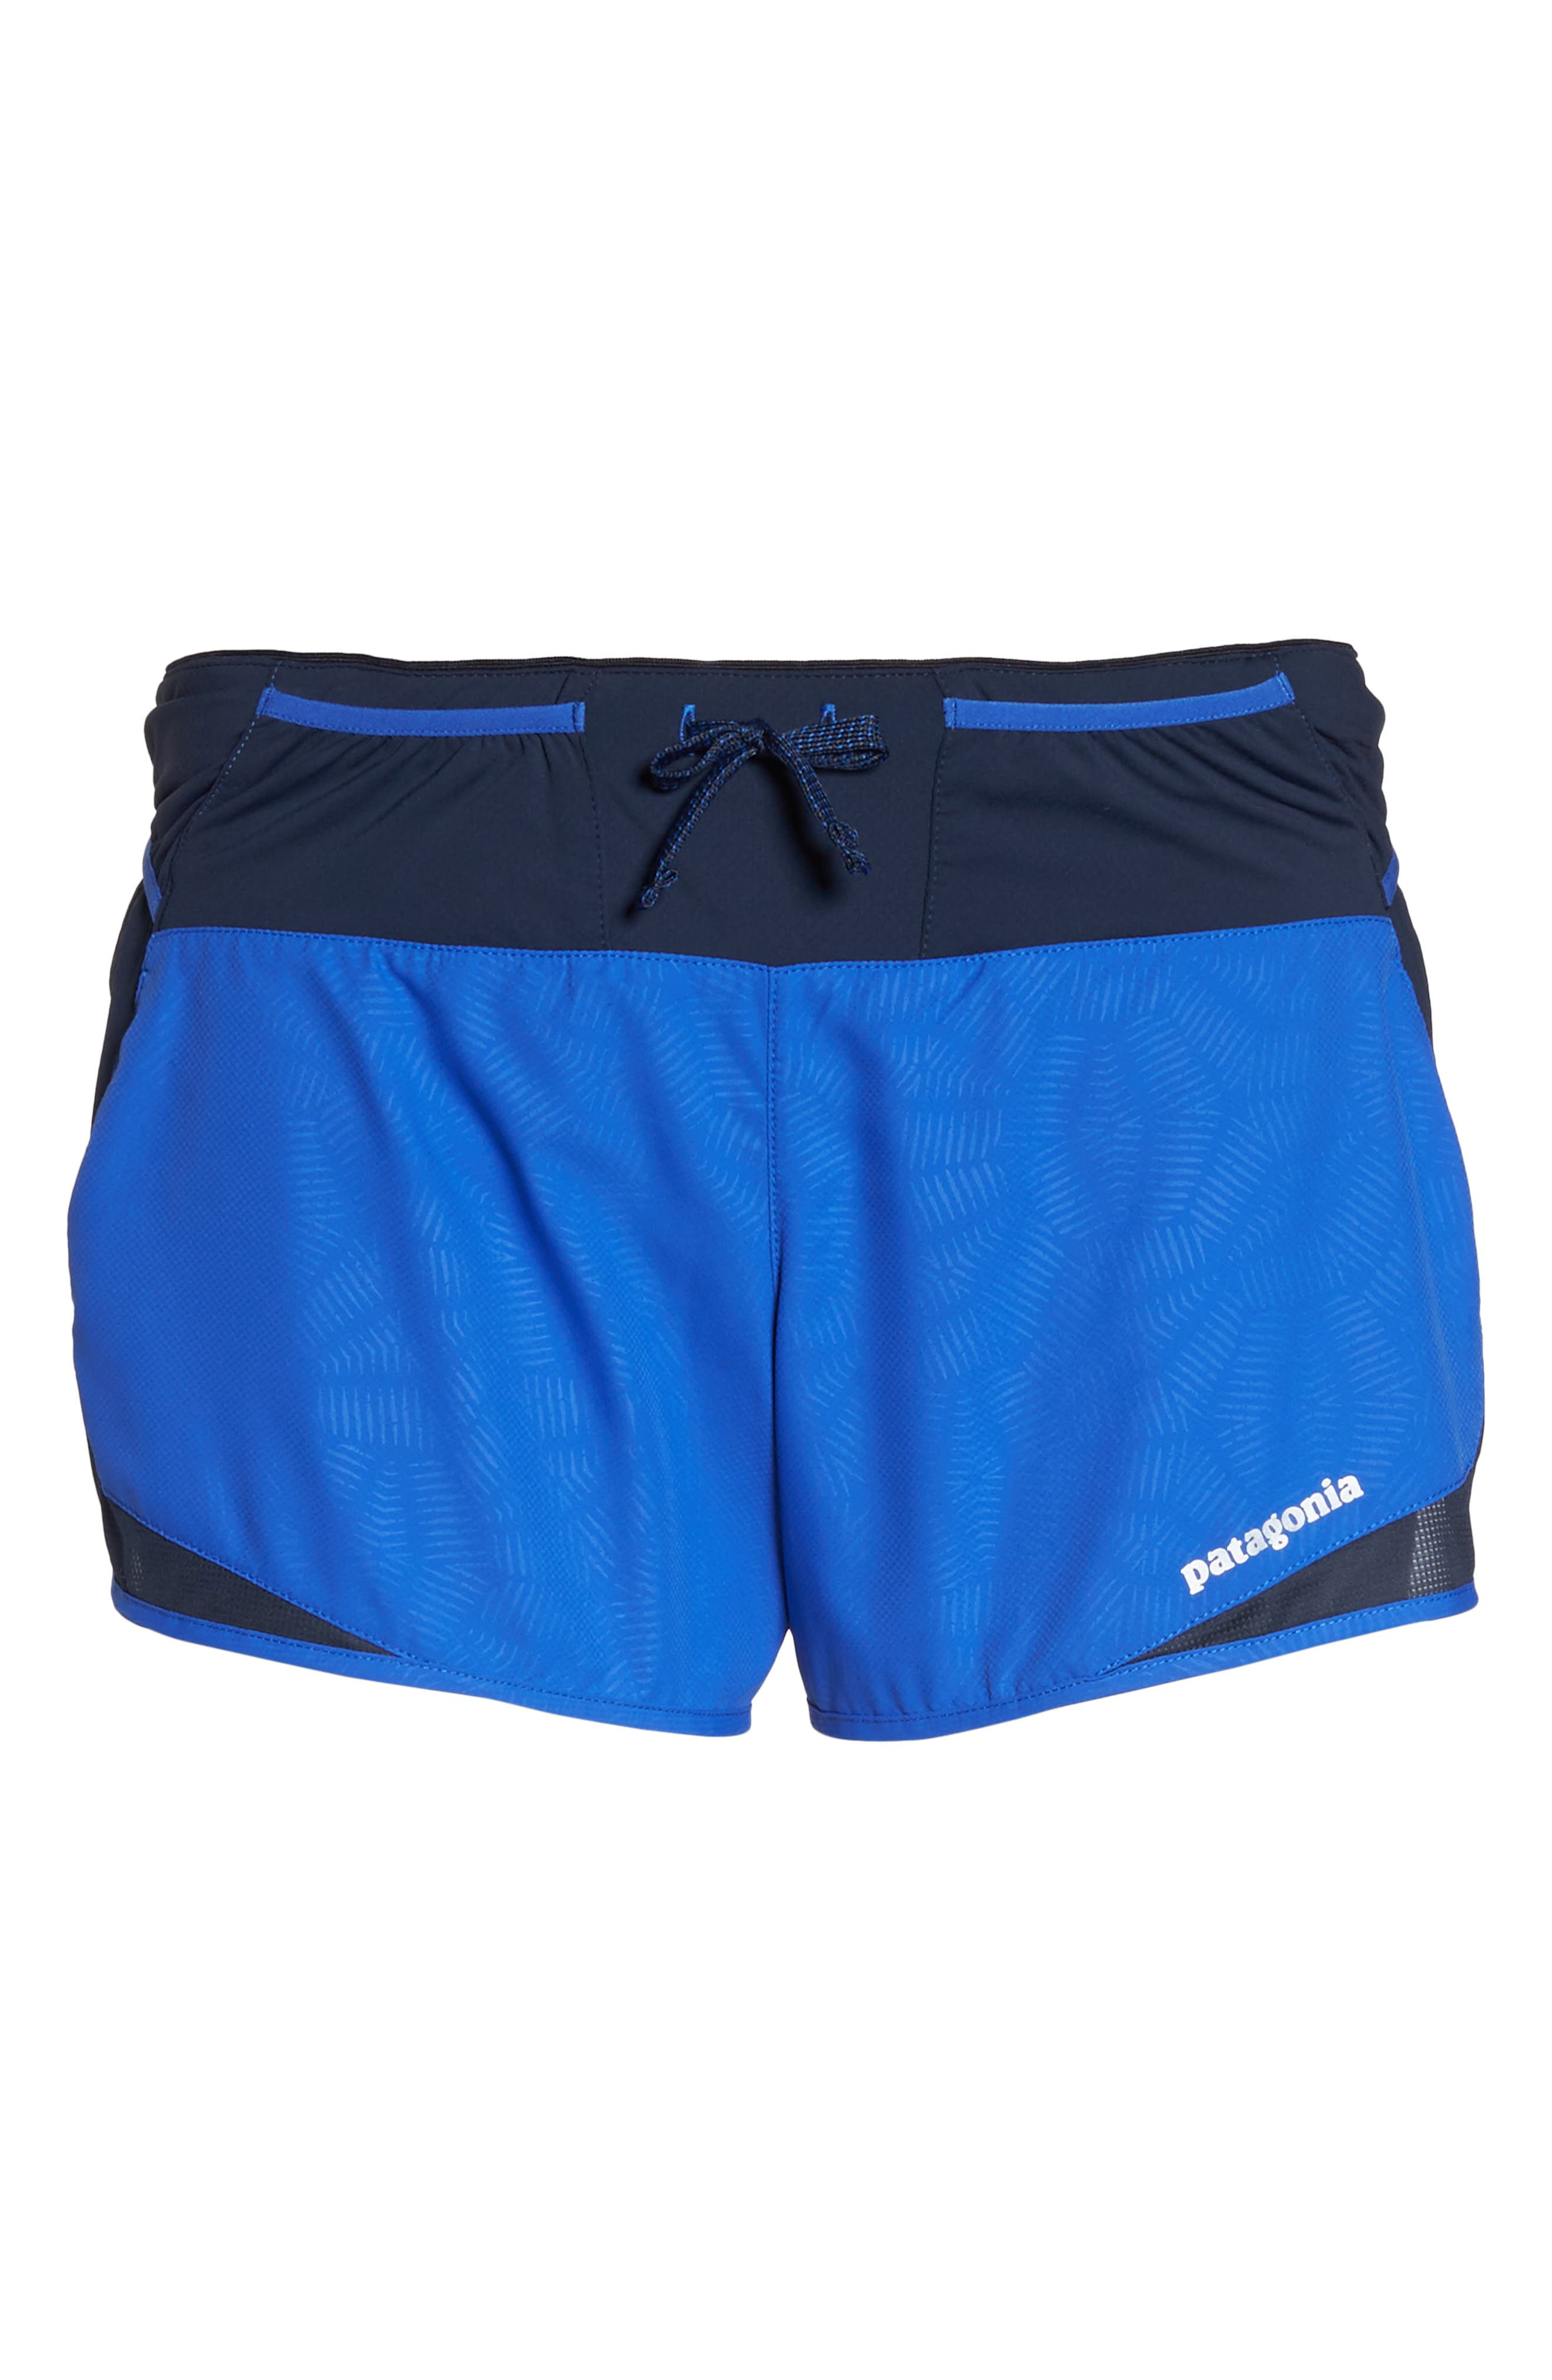 Strider Pro Trail Running Shorts,                             Alternate thumbnail 7, color,                             Hexy - Imperial Blue